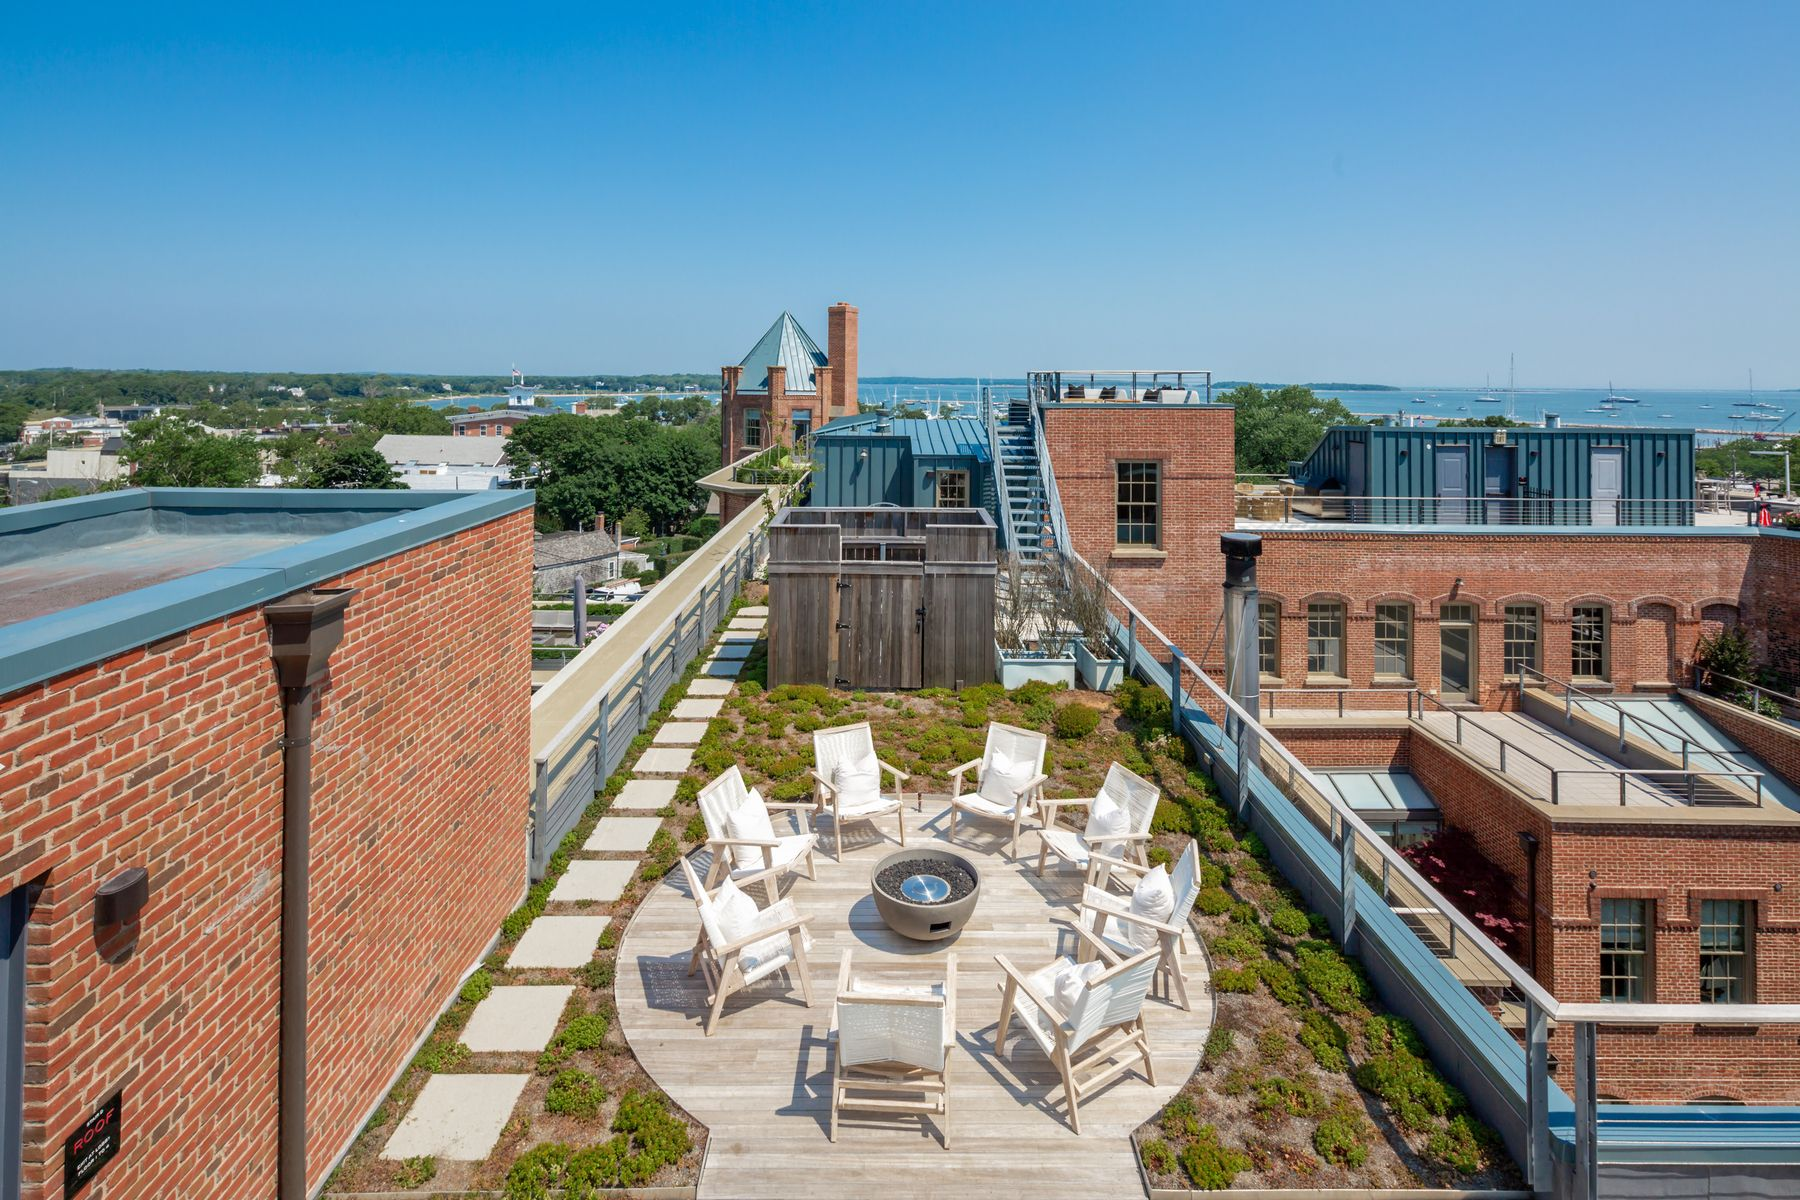 Additional photo for property listing at 15 Church Street, PH 418, Sag Harbor 15 Church Street Ph418 Watchcase - Penthouse Sag Harbor, New York 11963 United States